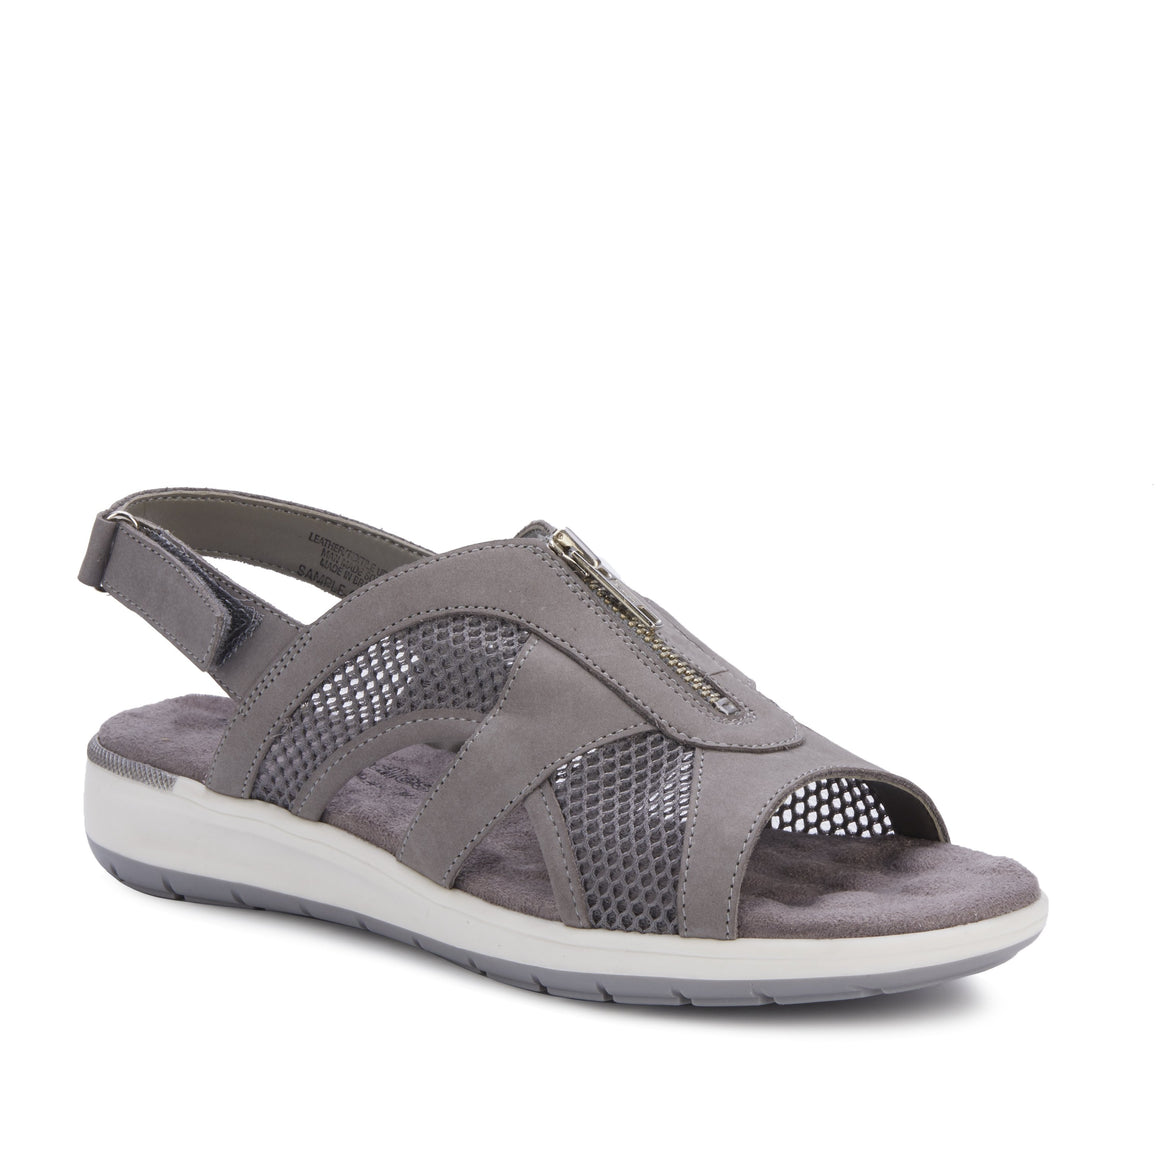 Spencer: Dove Gray Nubuck/Gray Mesh NEW